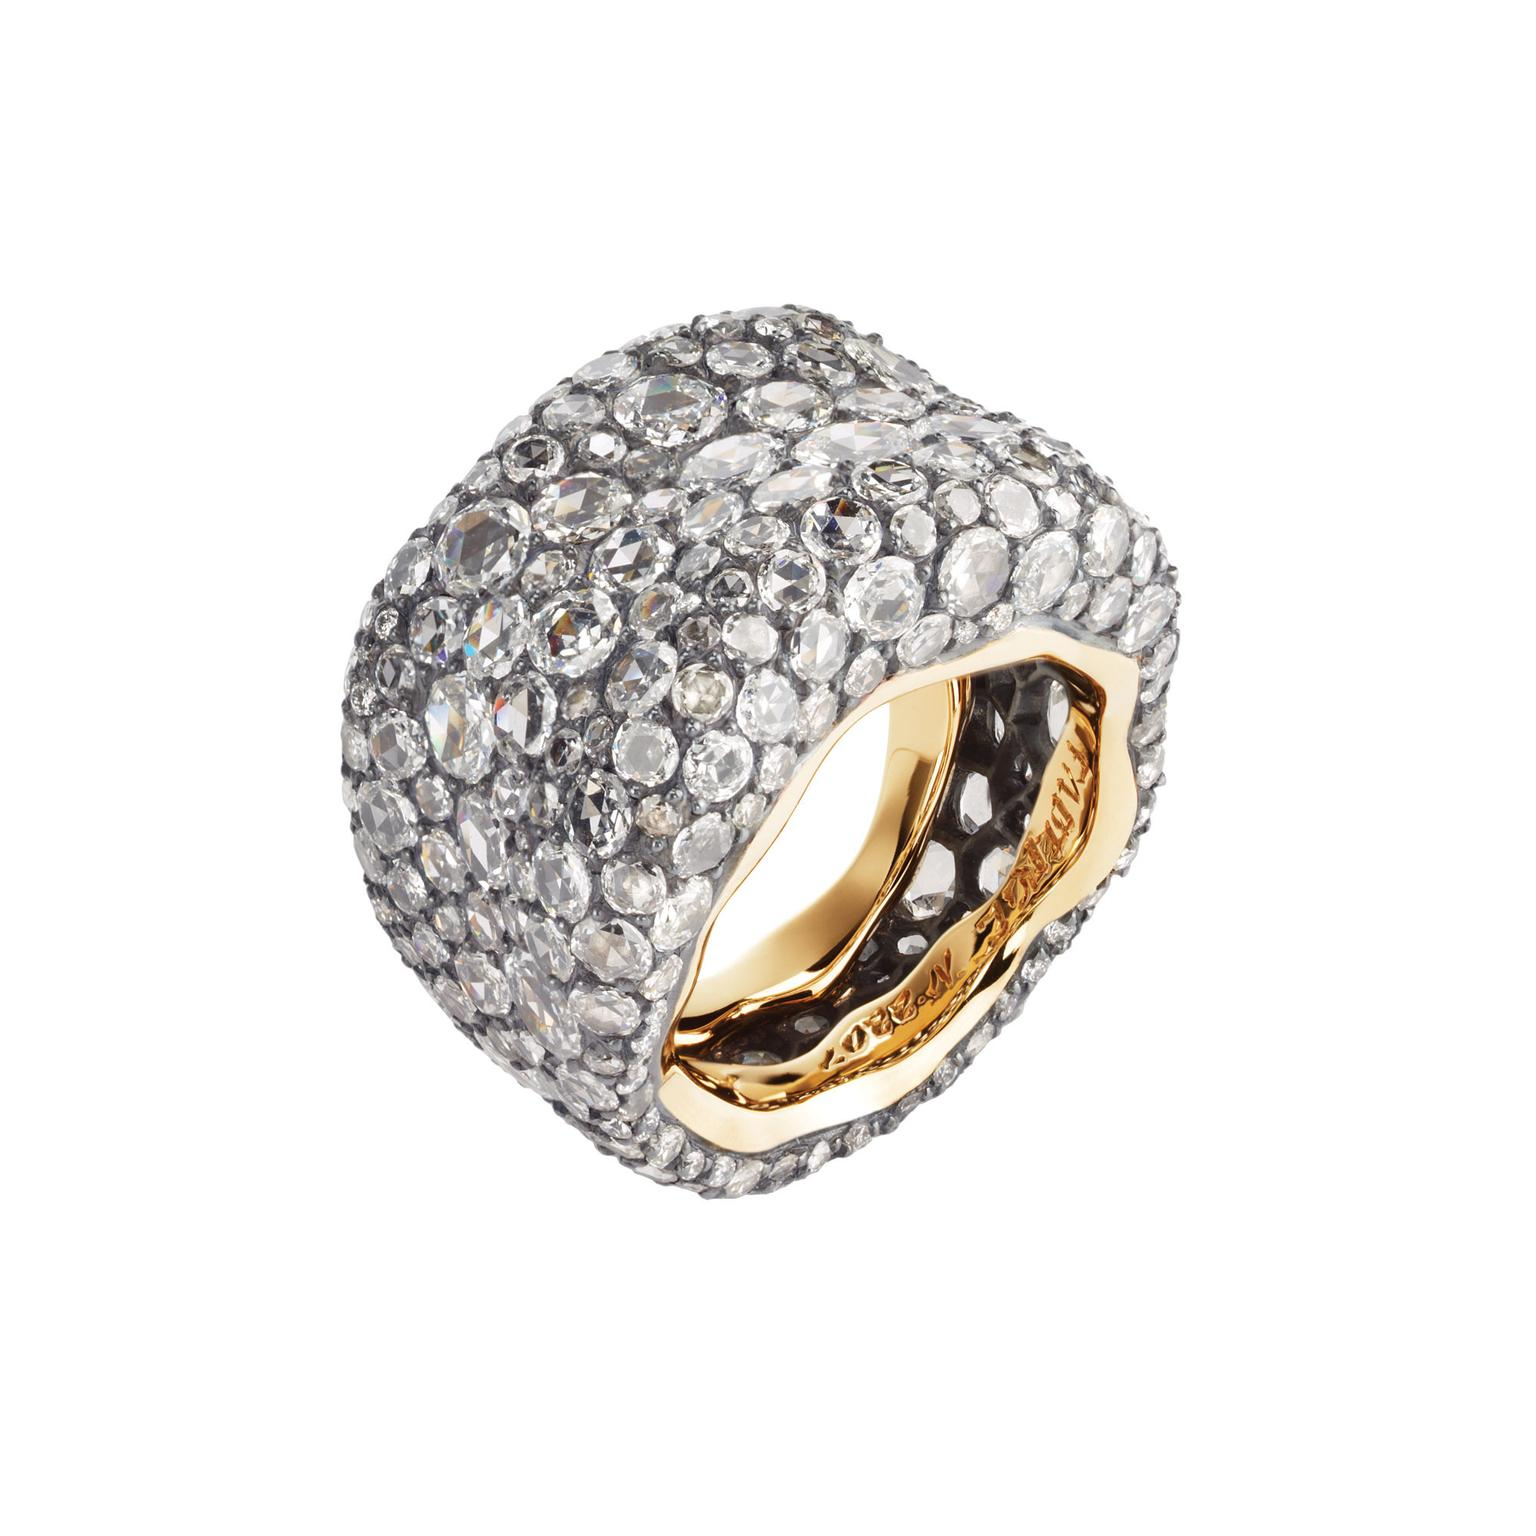 Fabergé Emotion diamond ring